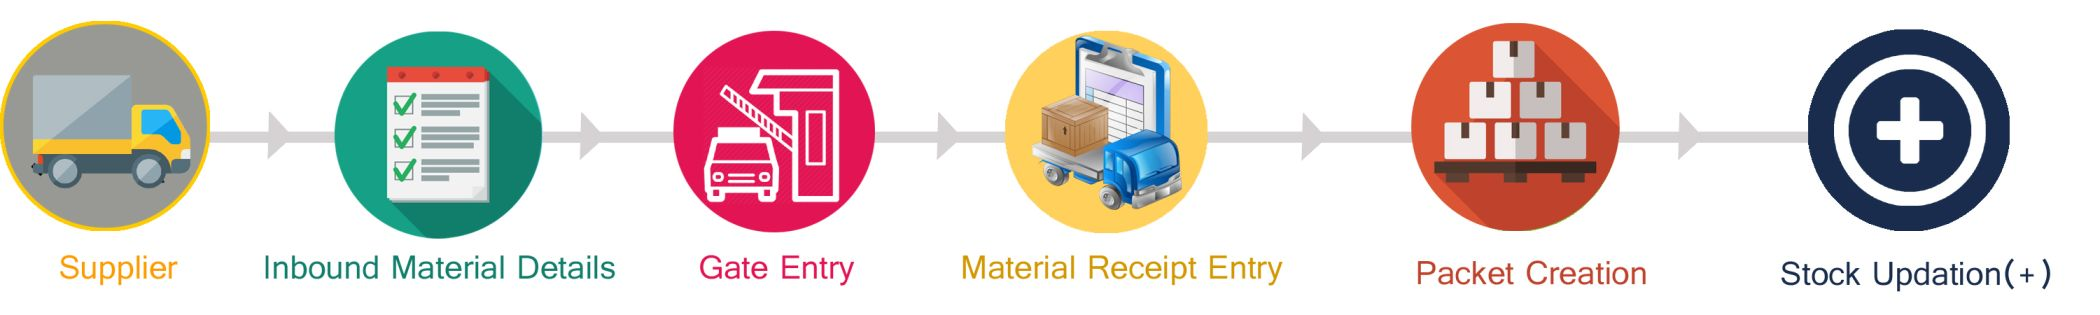 WMS Software in Pune | Warehouse Management Software from